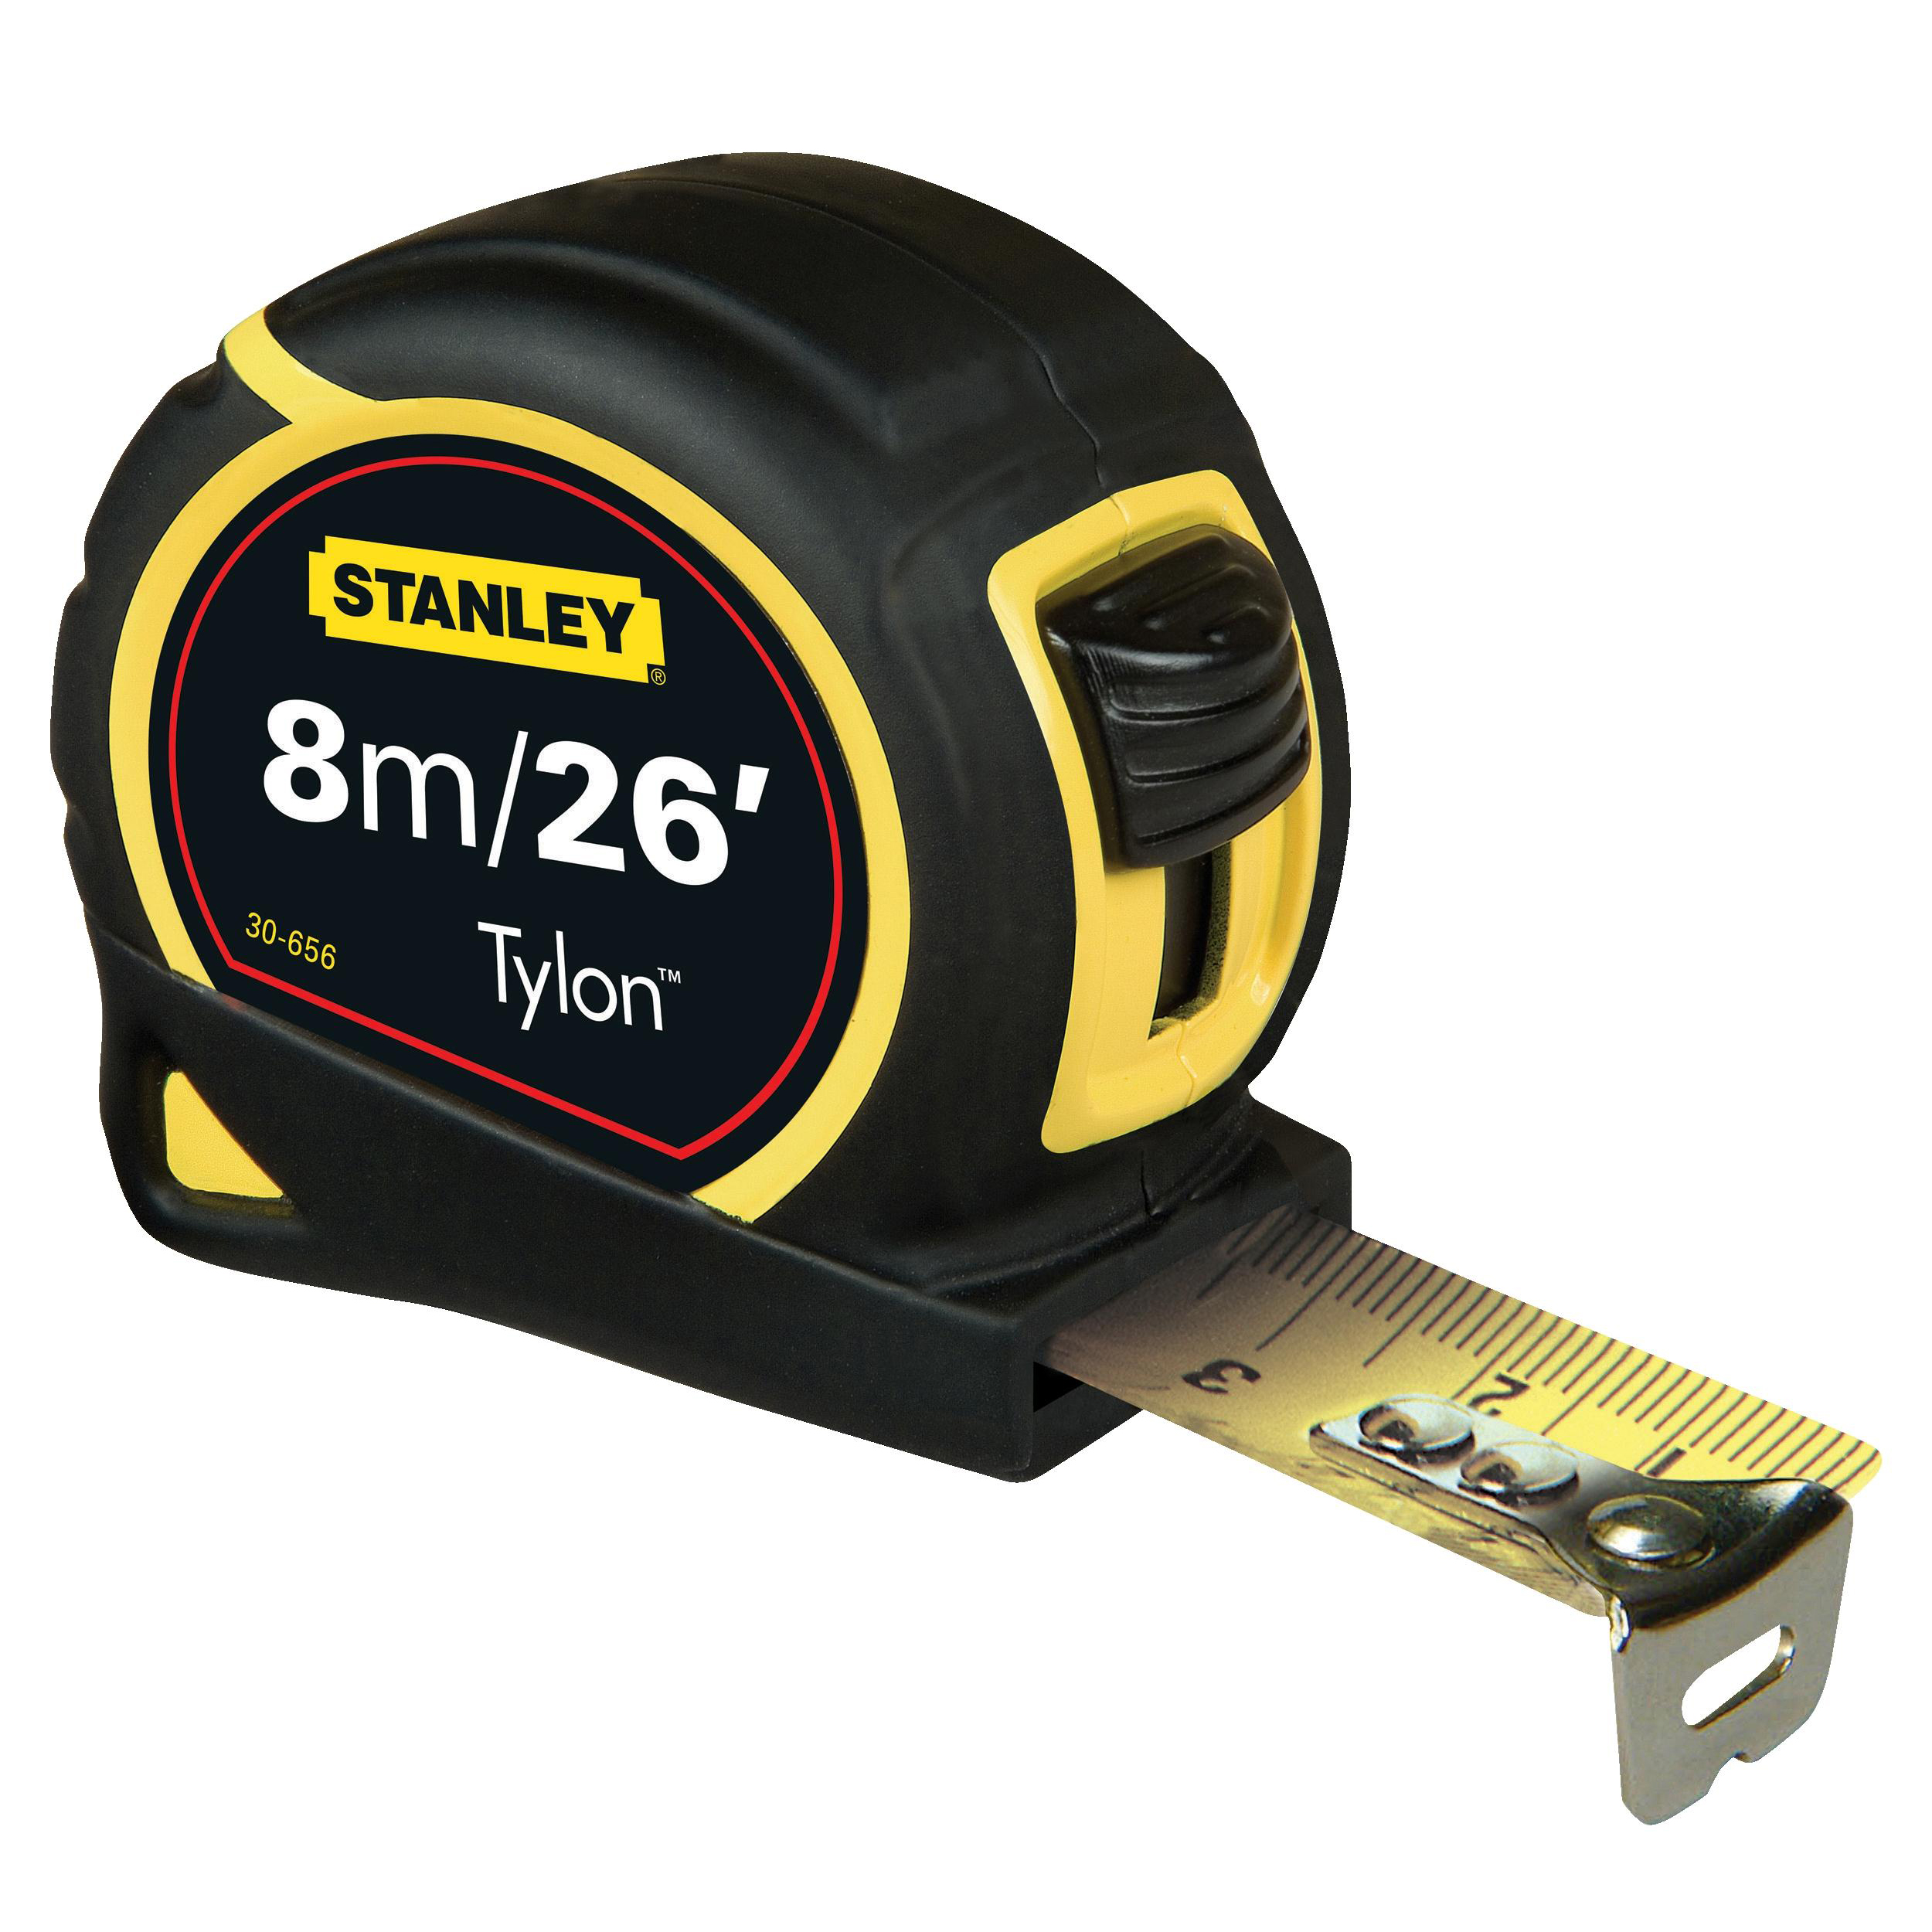 Planes, Chisels & Files Stanley Tape Measure Pocket 8m/26 Feet Tylon Ref 0-30-656